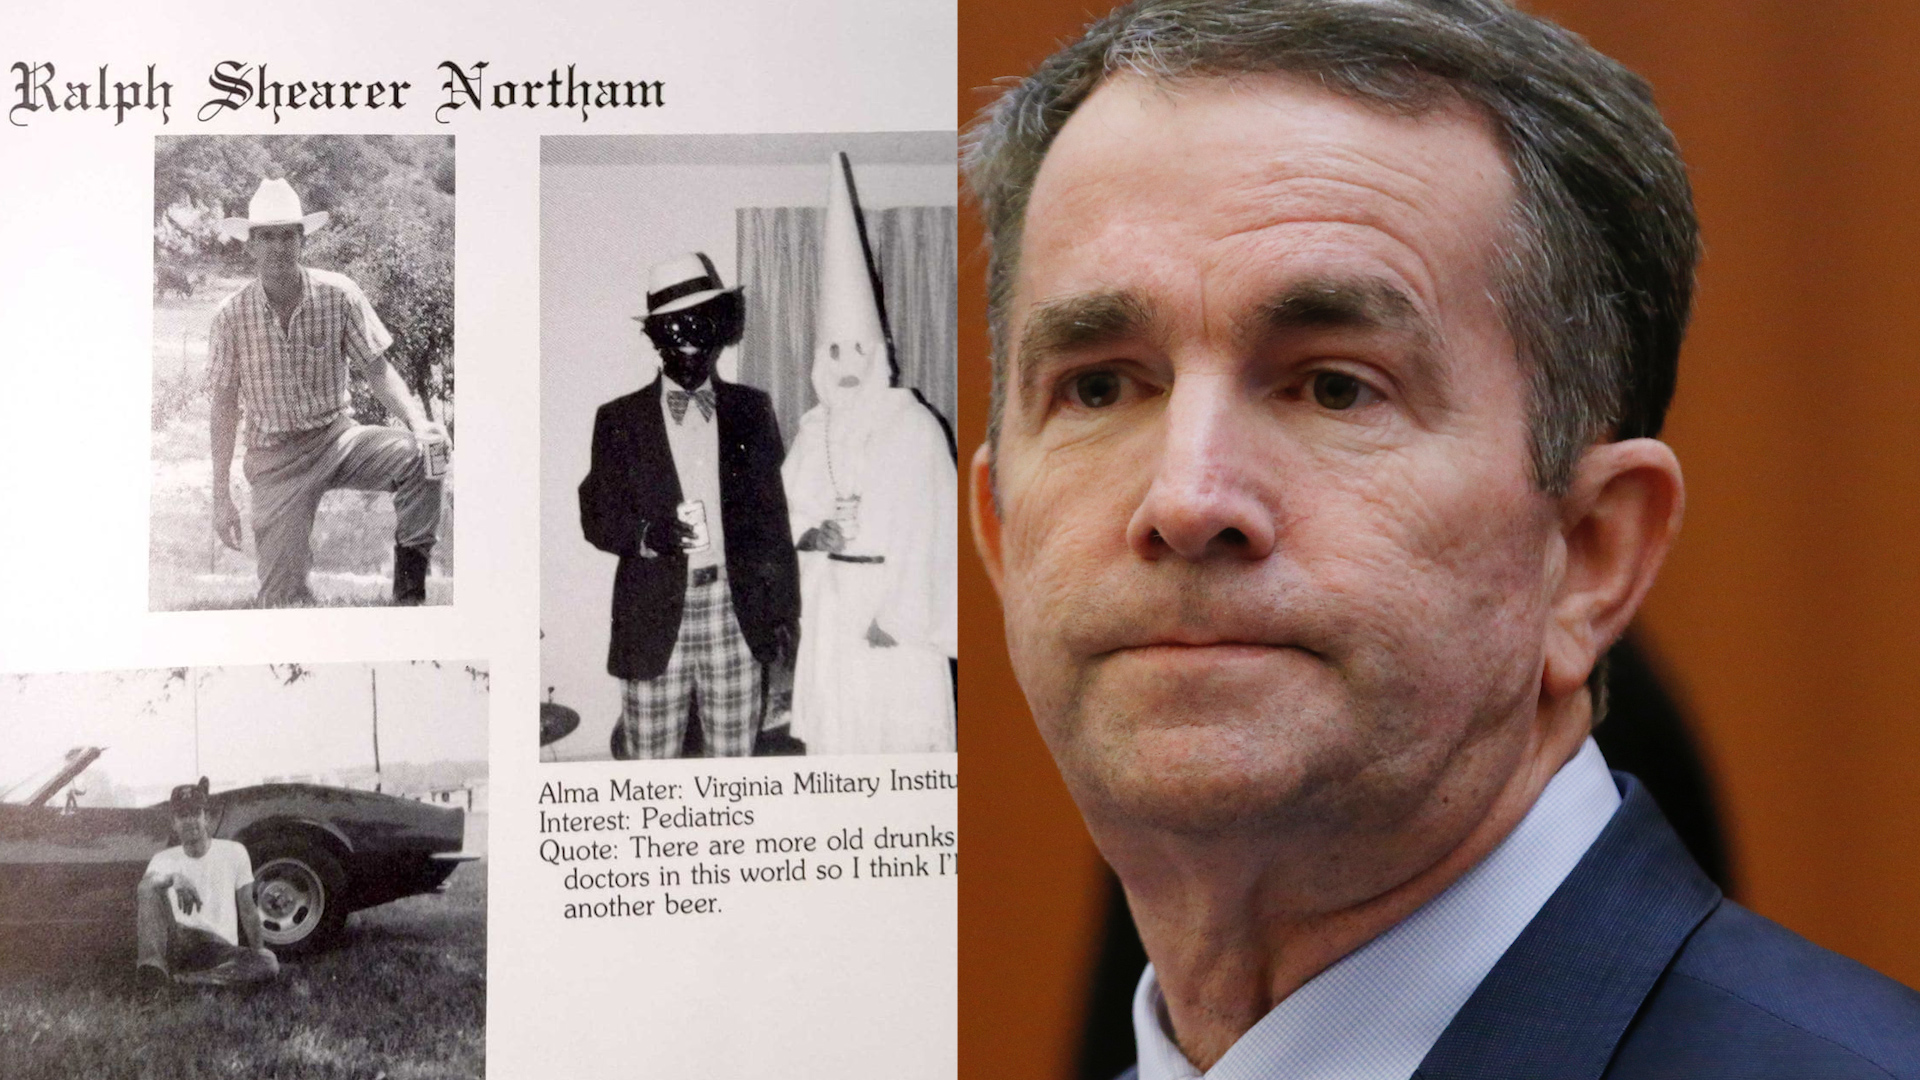 Gov. Ralph Northam admits he was in 1984 yearbook photo showing figures in blackface, KKK hood